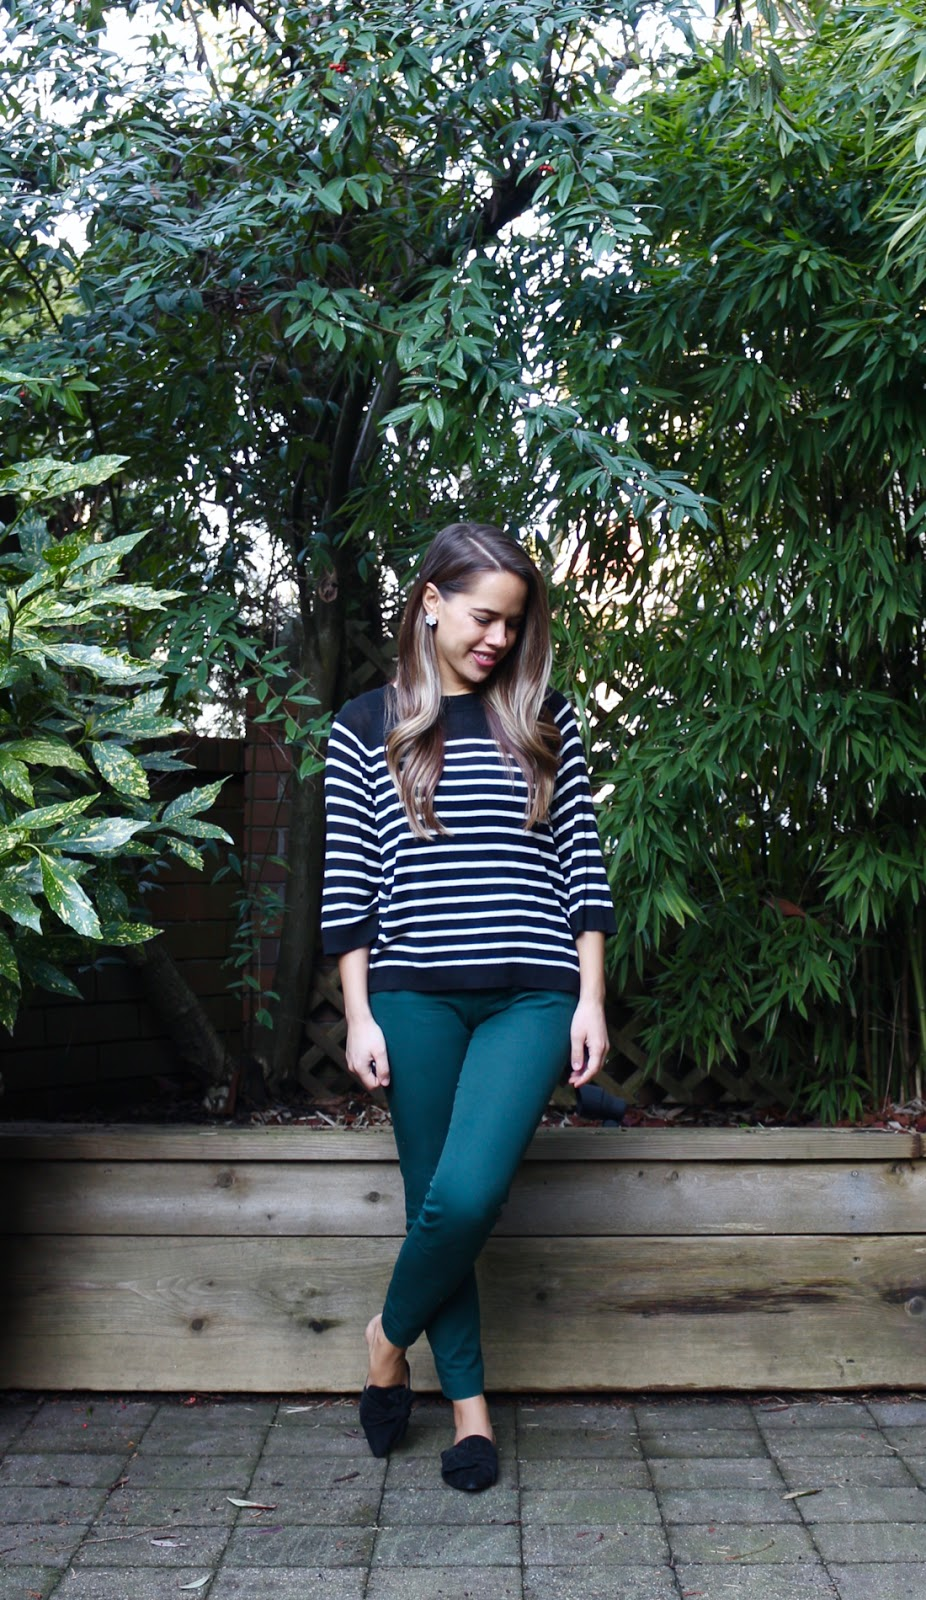 Jules in Flats - Boxy Striped Sweater with Green Ankle Pants (Business Casual Spring Workwear on a Budget)